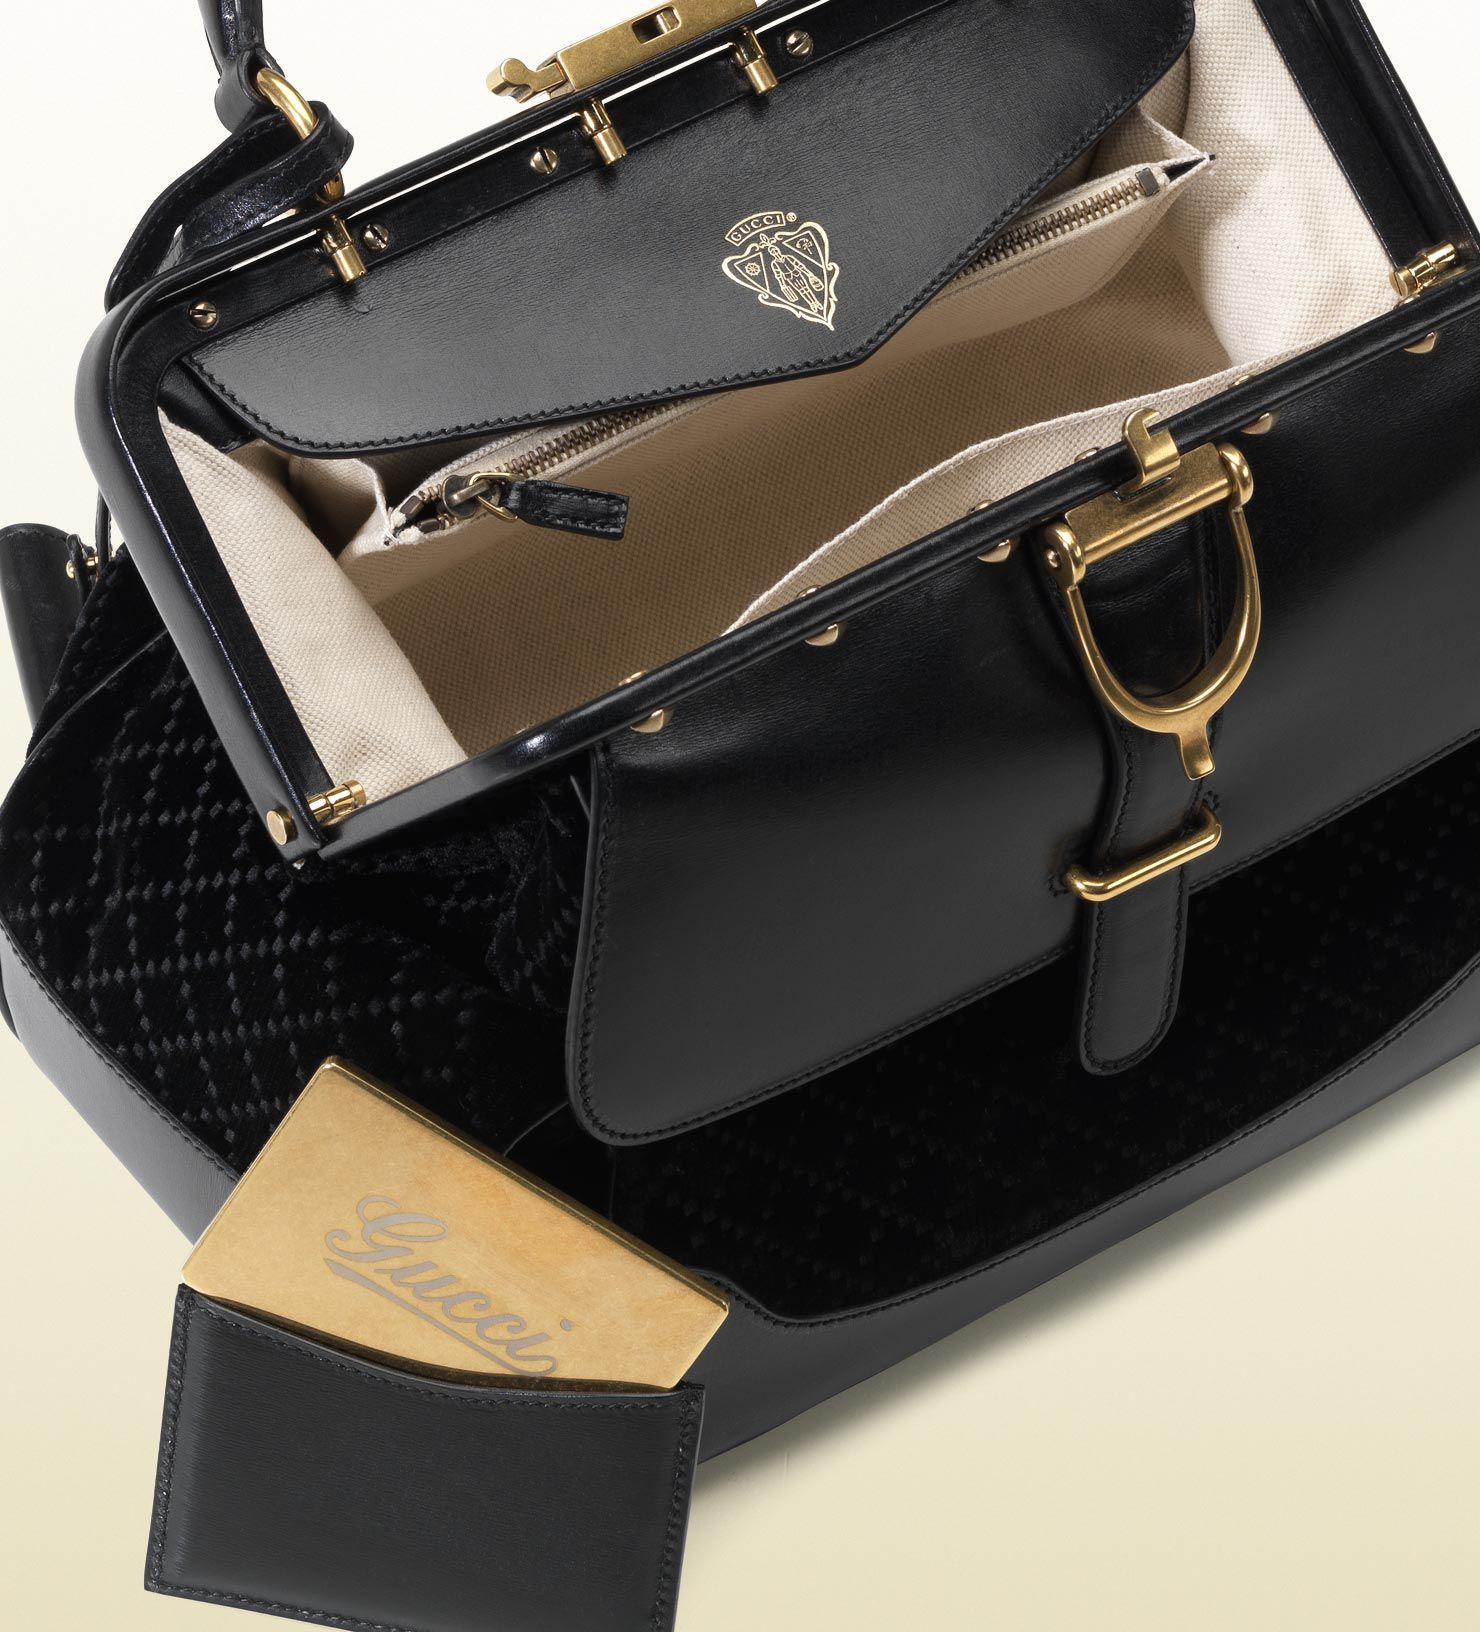 7f07d6de4957 Gucci Women's Fall Winter 2012-2013 Collection: Lady Stirrup Top Handle  Black Diamante Velvet Bag